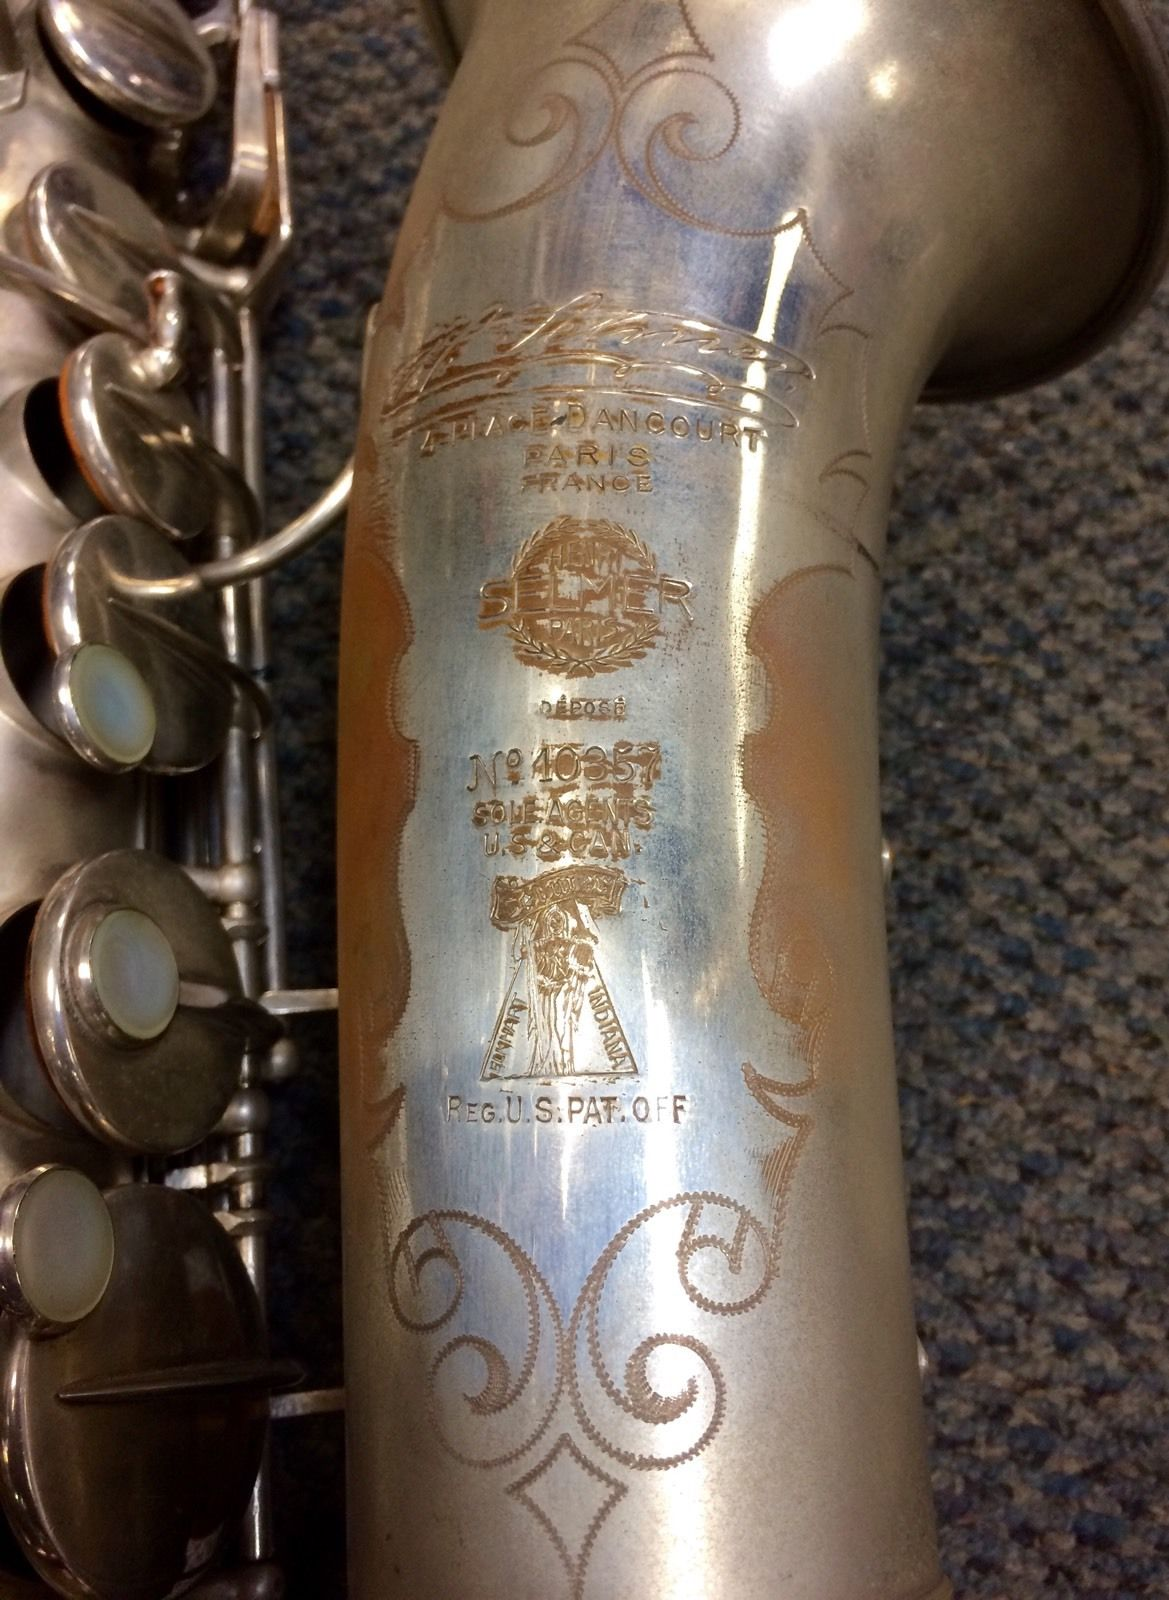 Selmer Paris model 22